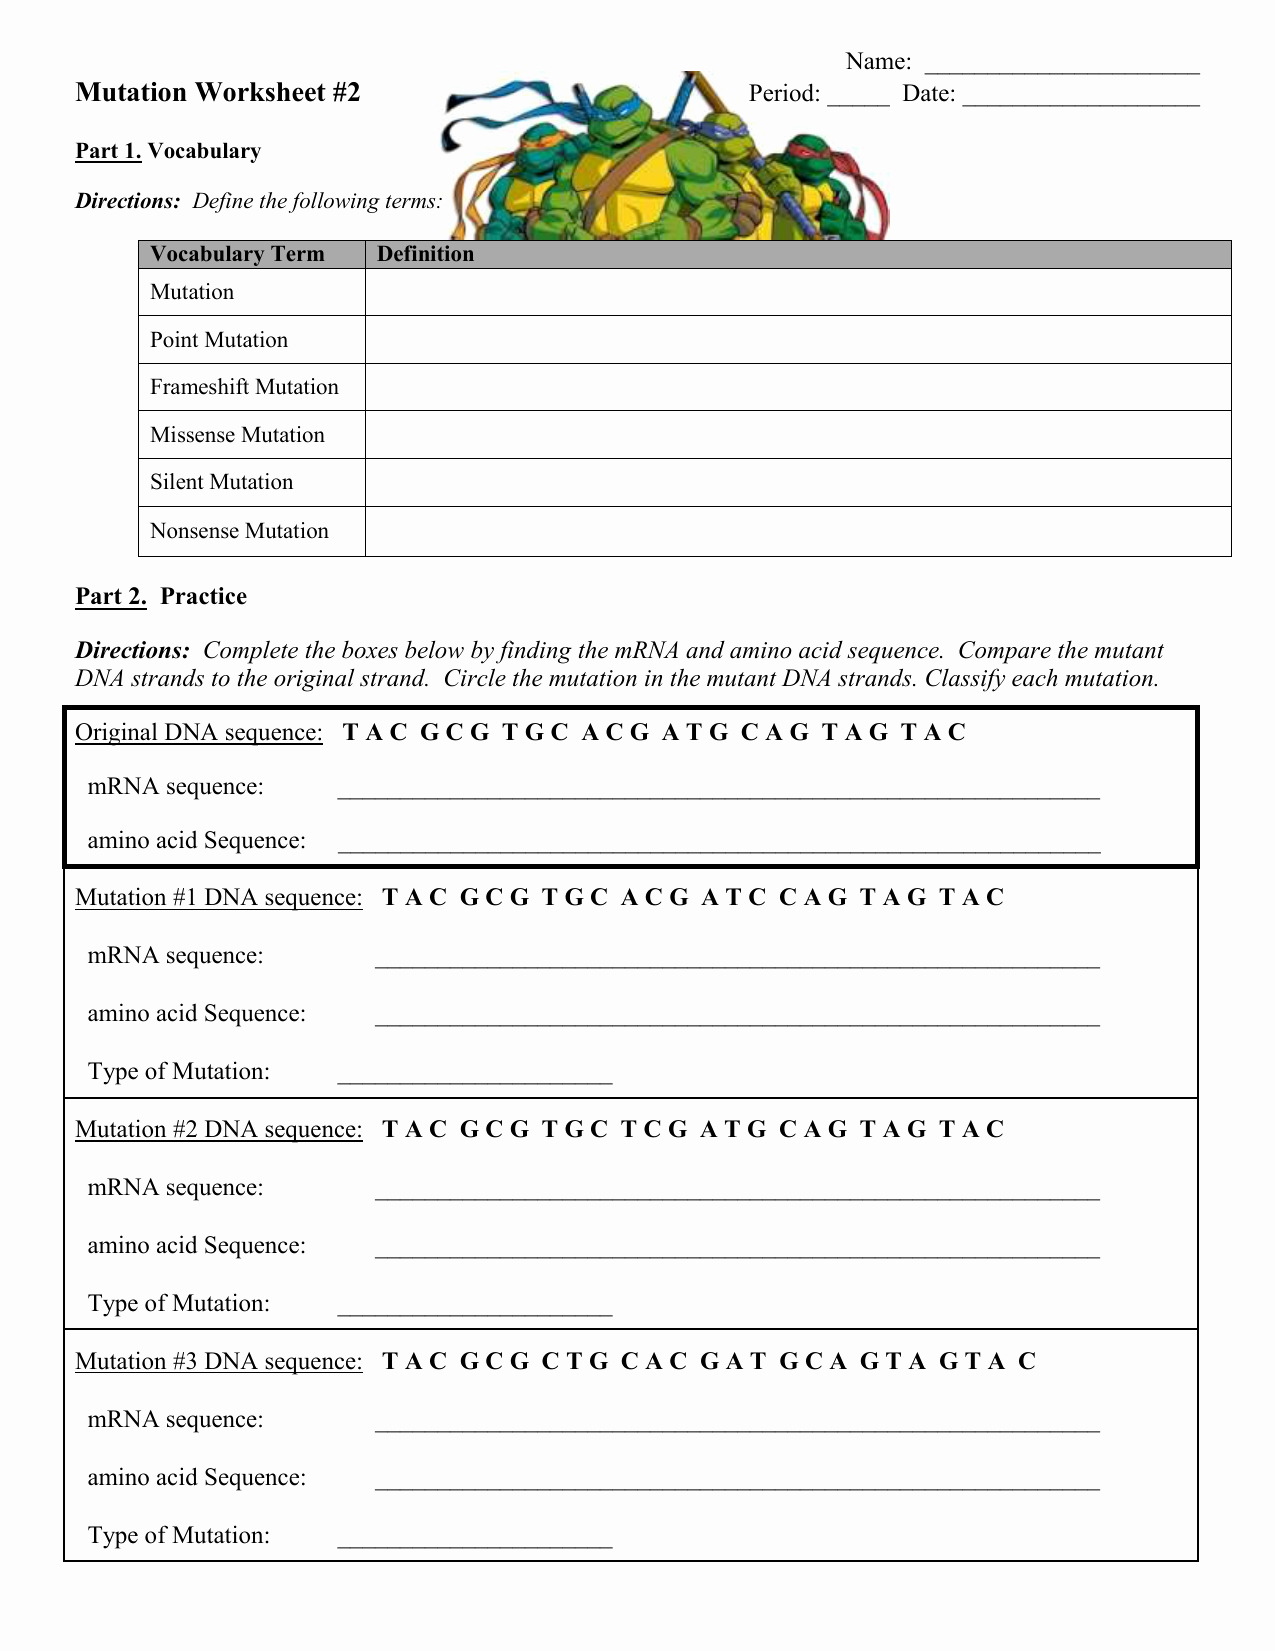 Genetic Mutation Worksheet Answer Key Unique Genetic Mutation Worksheet Answer Key